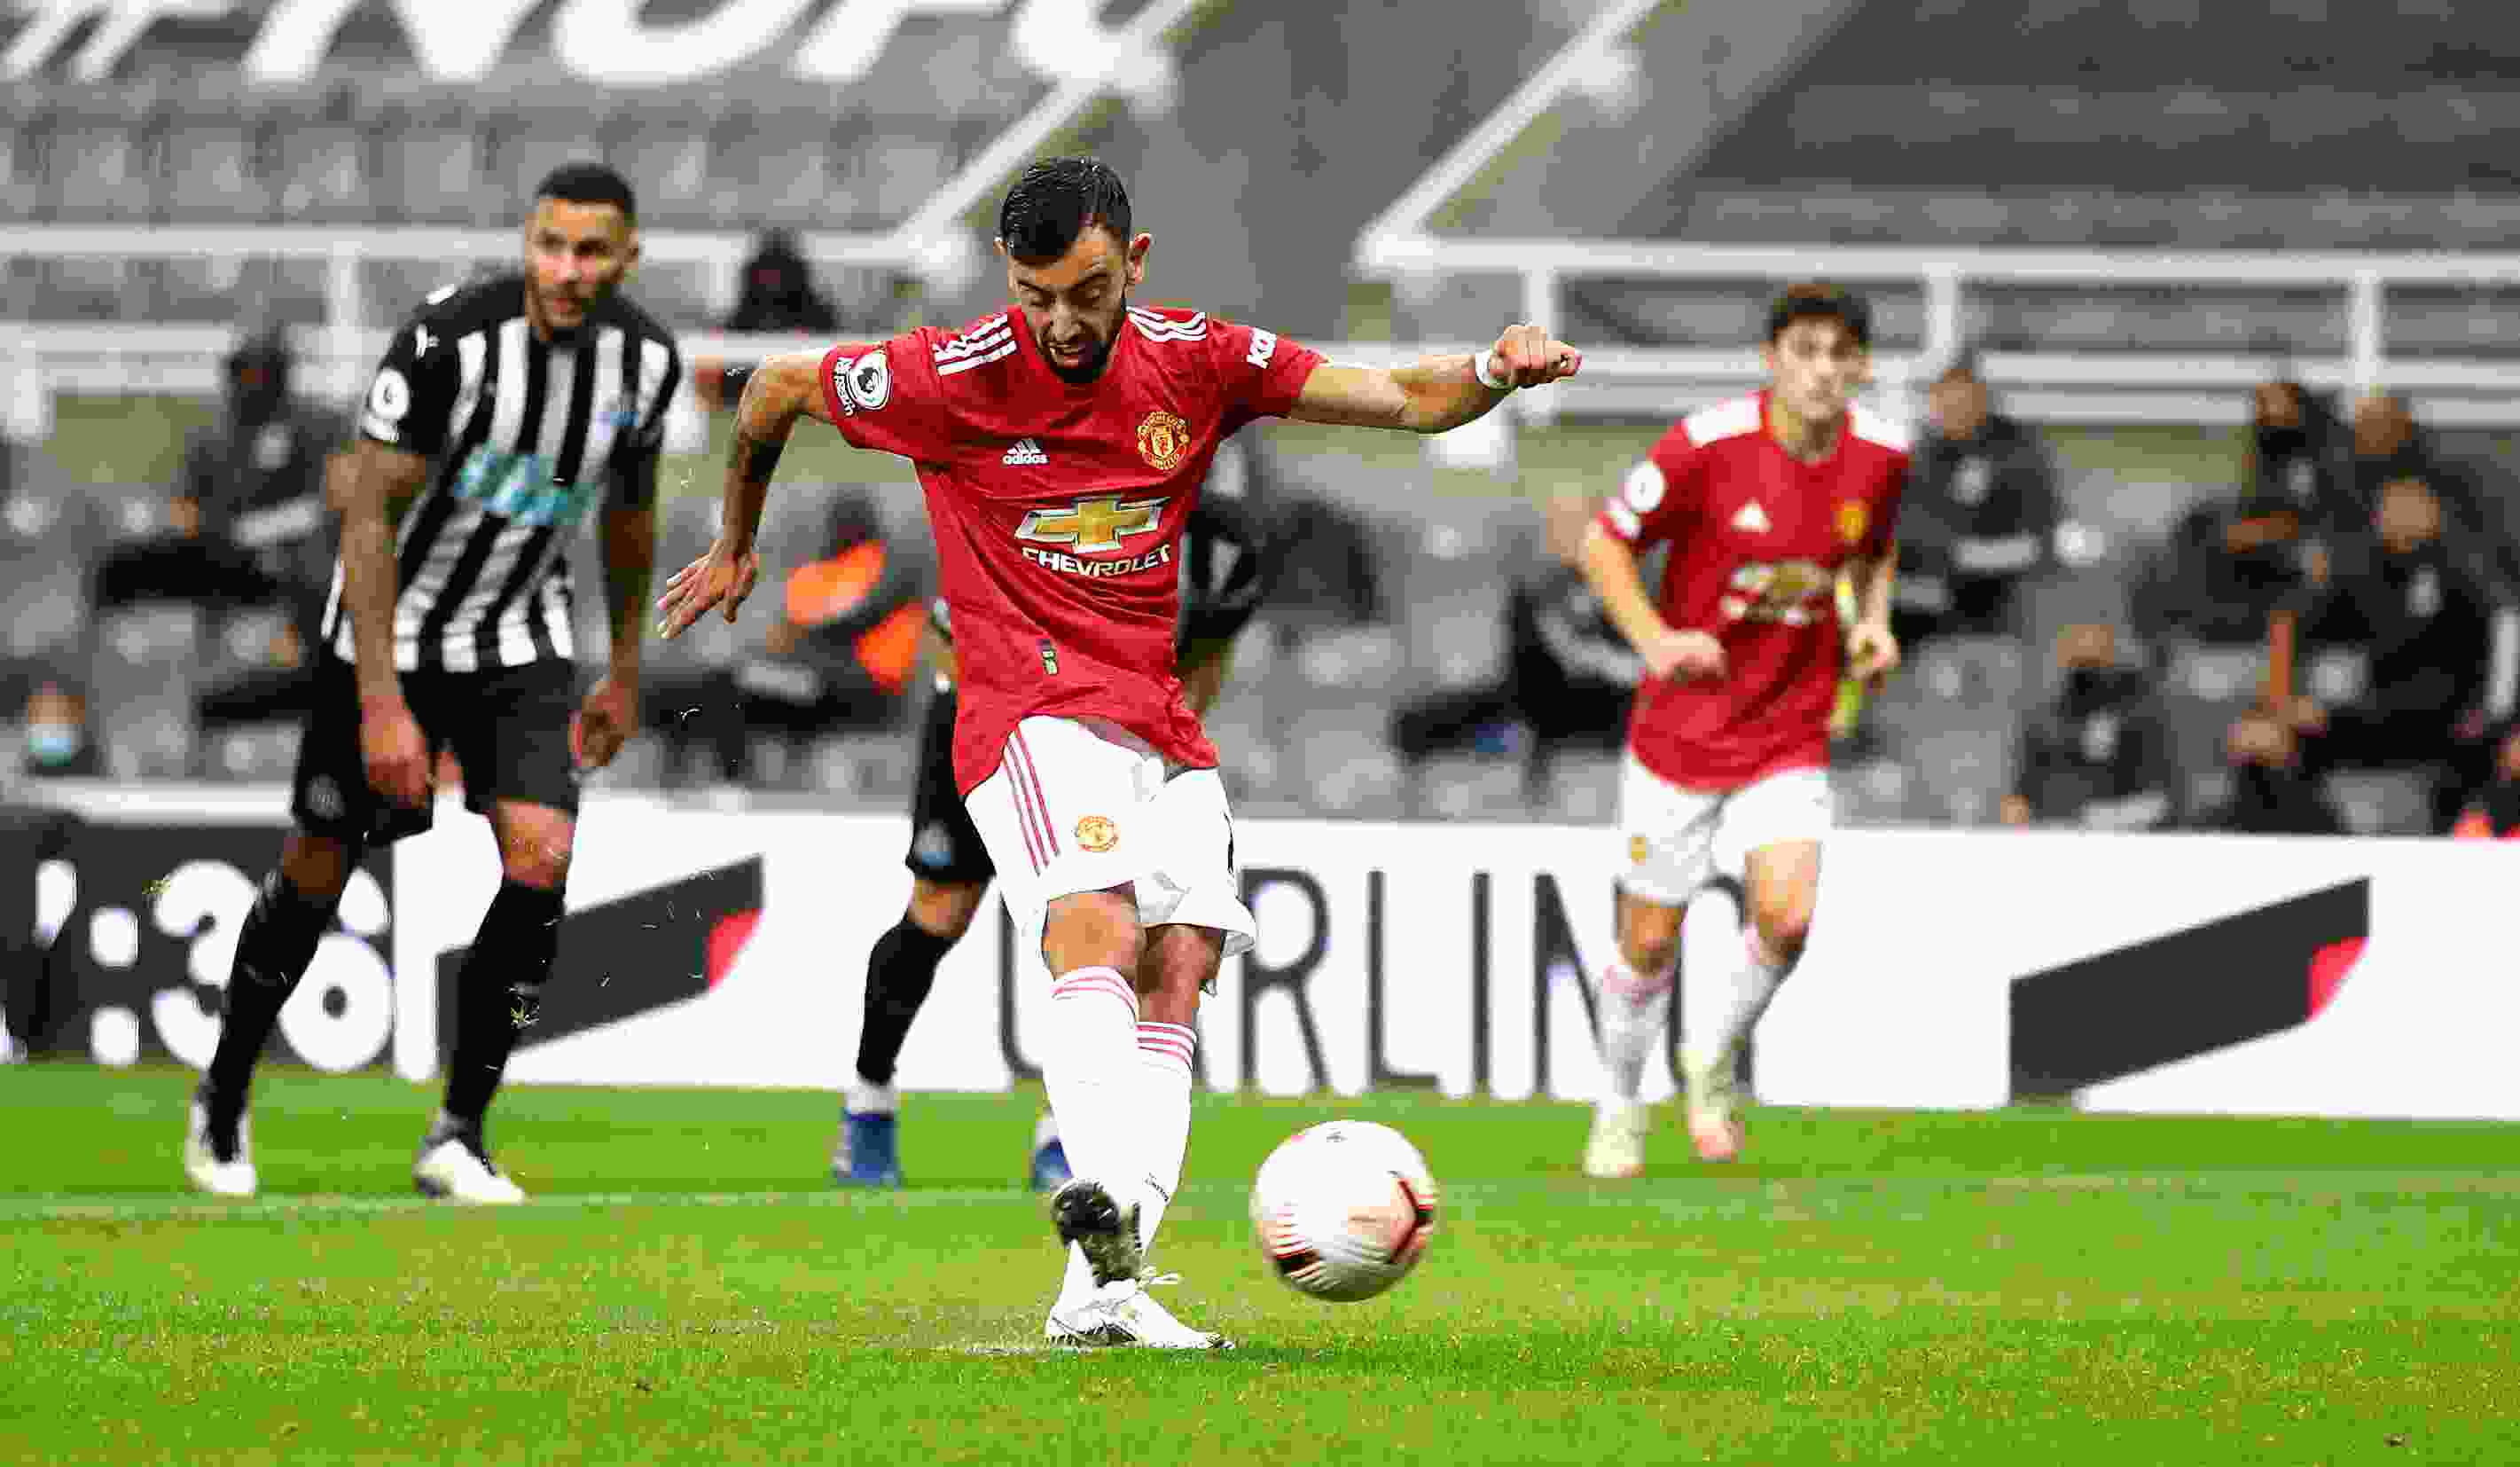 Fernandes praises Maguire & sends transfer message to Man Utd fans